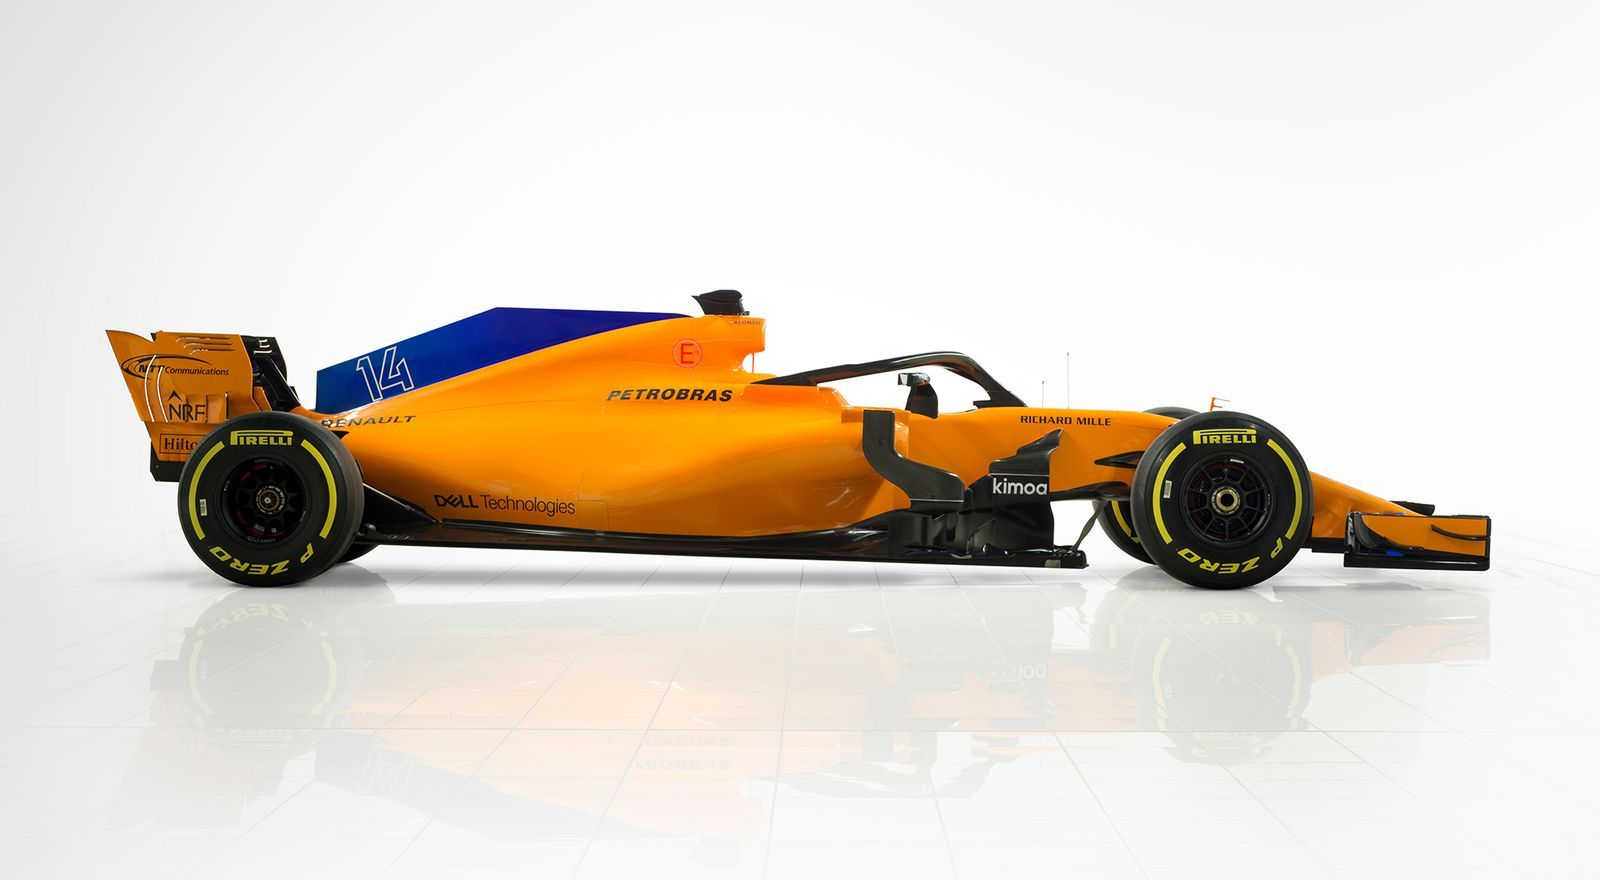 mclaren formula 1 mclaren unveils striking 2018 challenger the mcl33. Black Bedroom Furniture Sets. Home Design Ideas